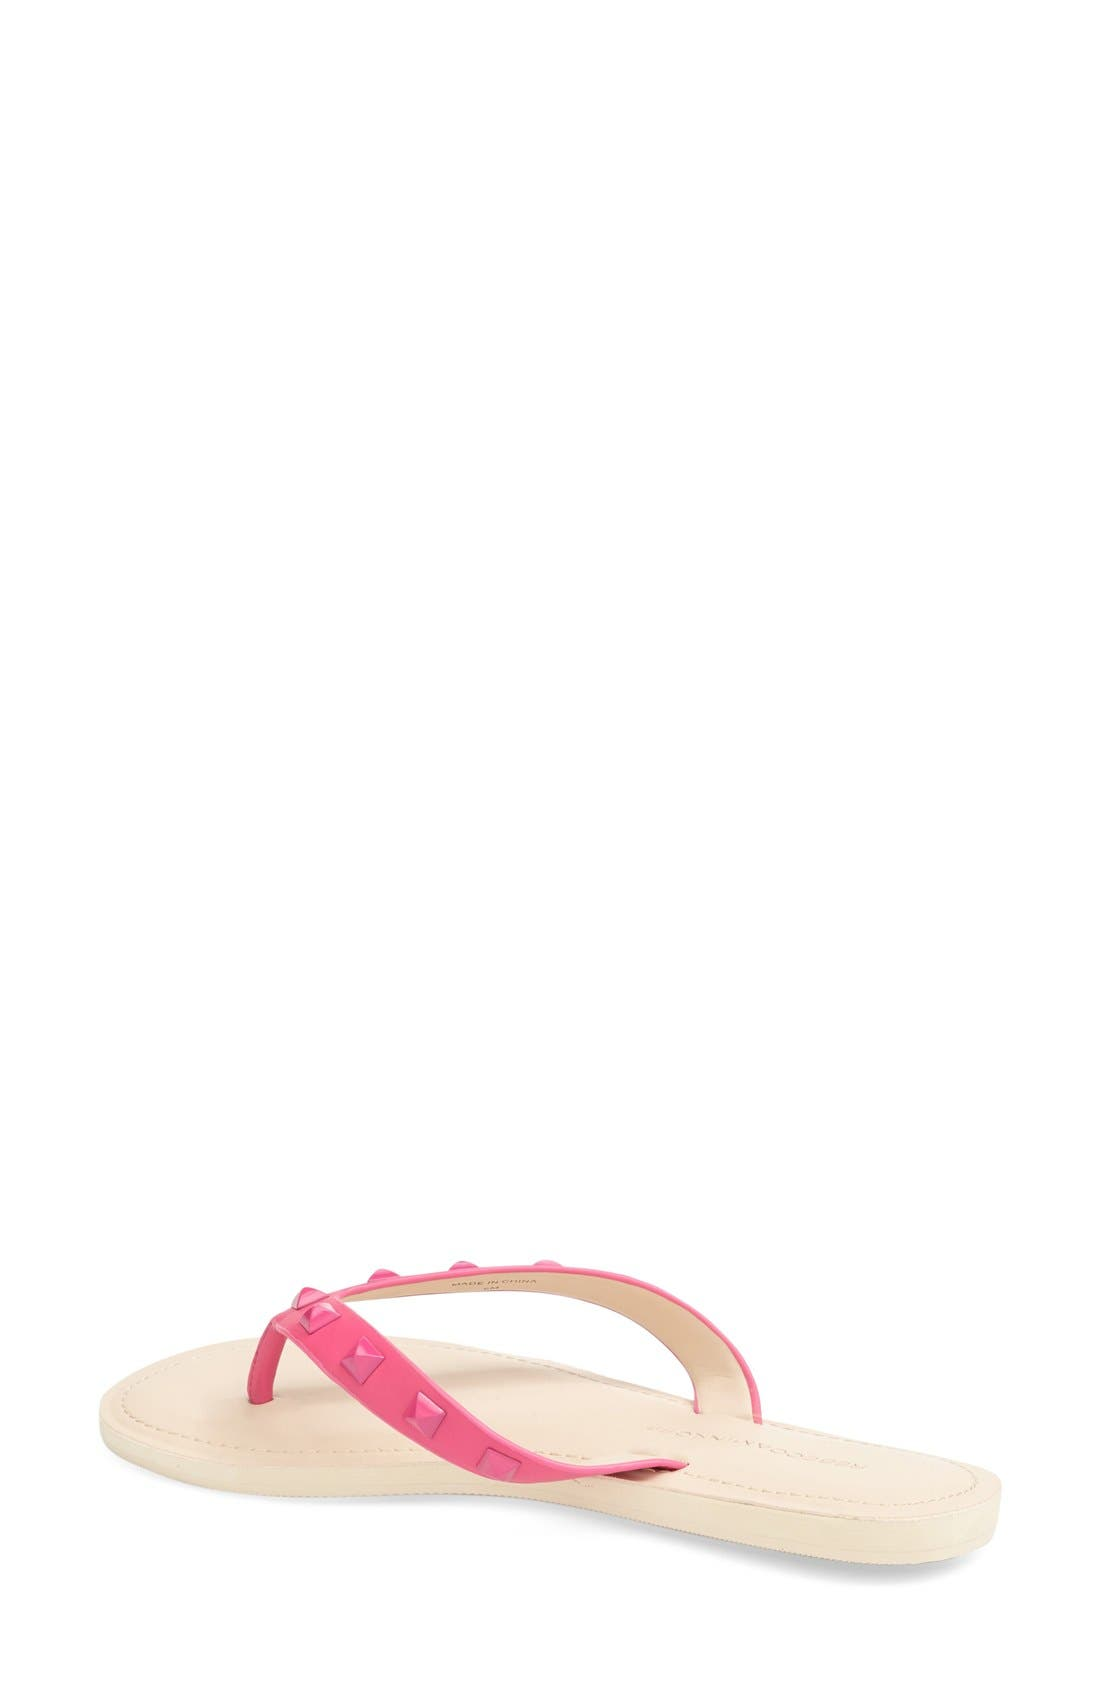 'Fiona' Thong Sandal,                             Alternate thumbnail 2, color,                             Fuchsia Nappa